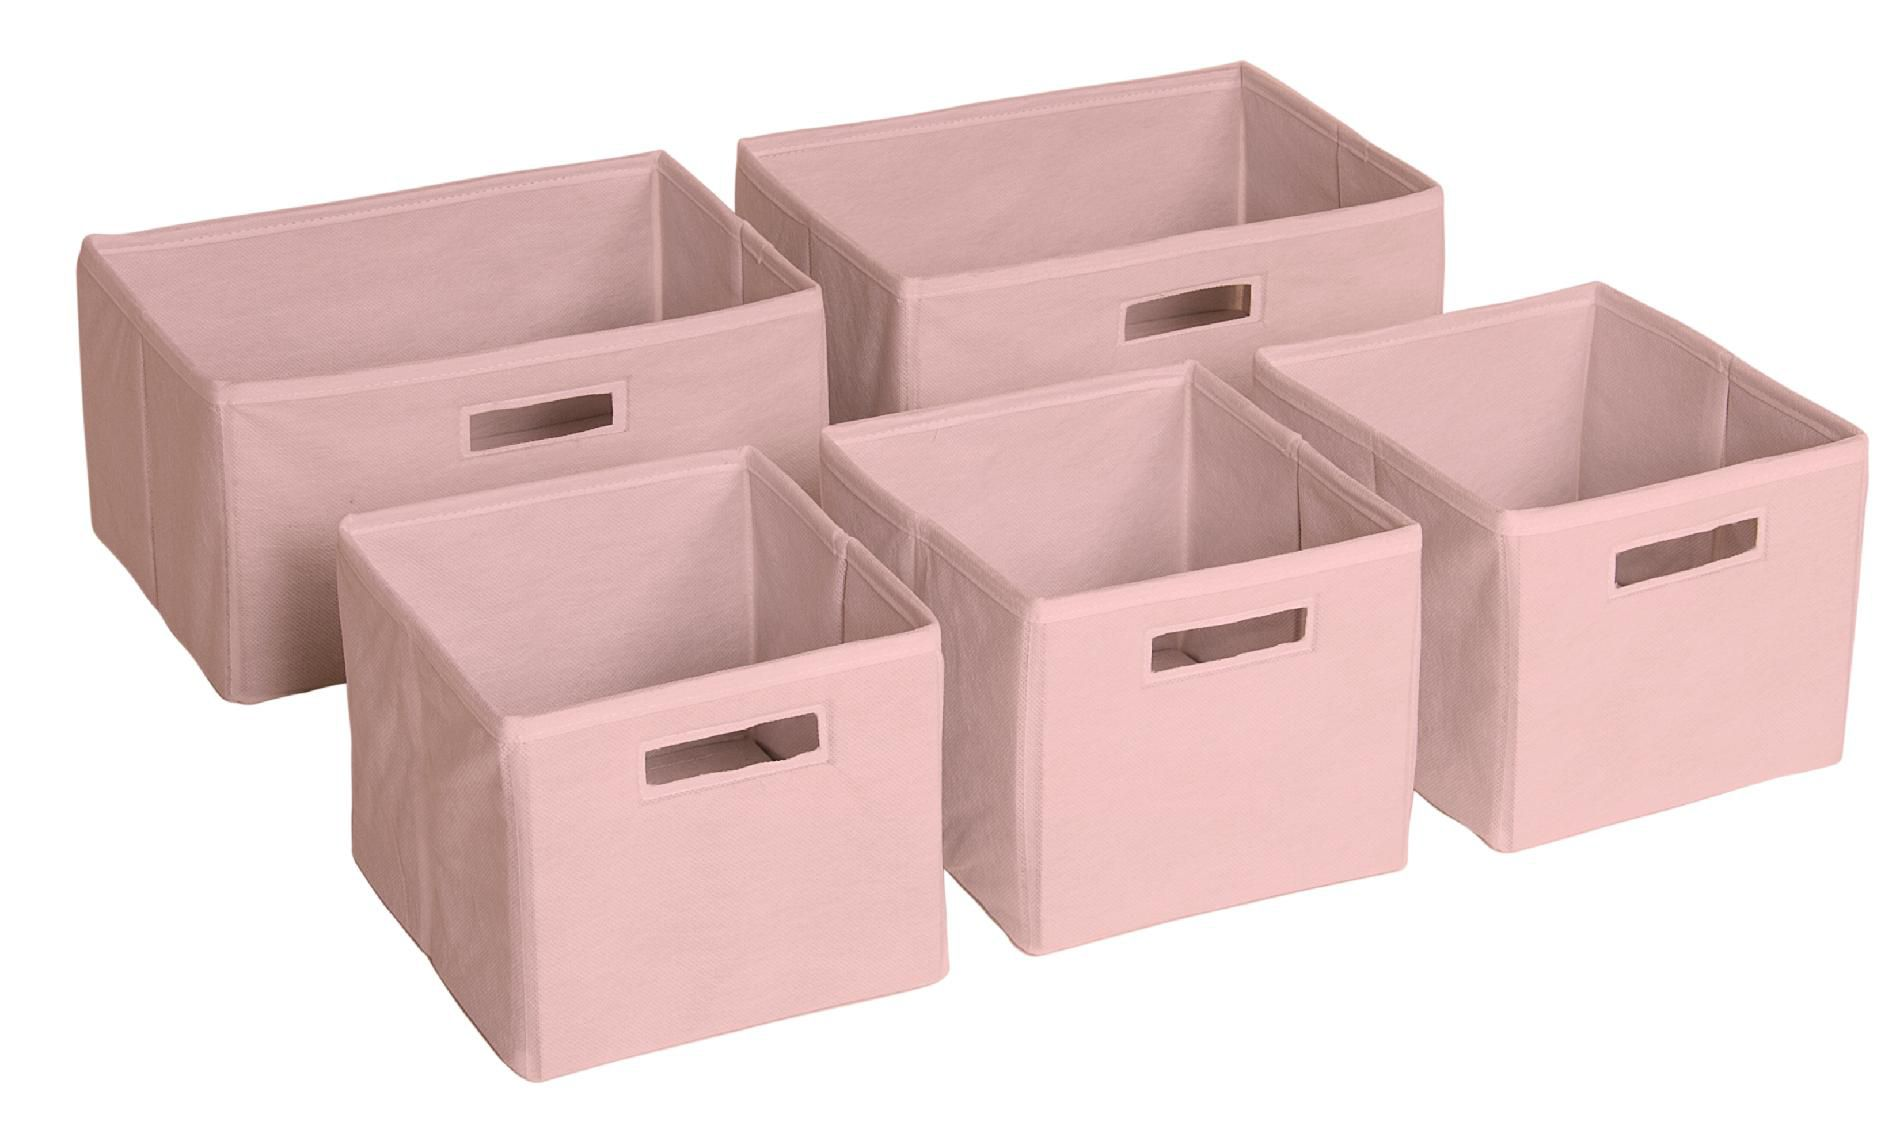 Pink Bins Guidecraft Pink Storage Bins Set Of 5